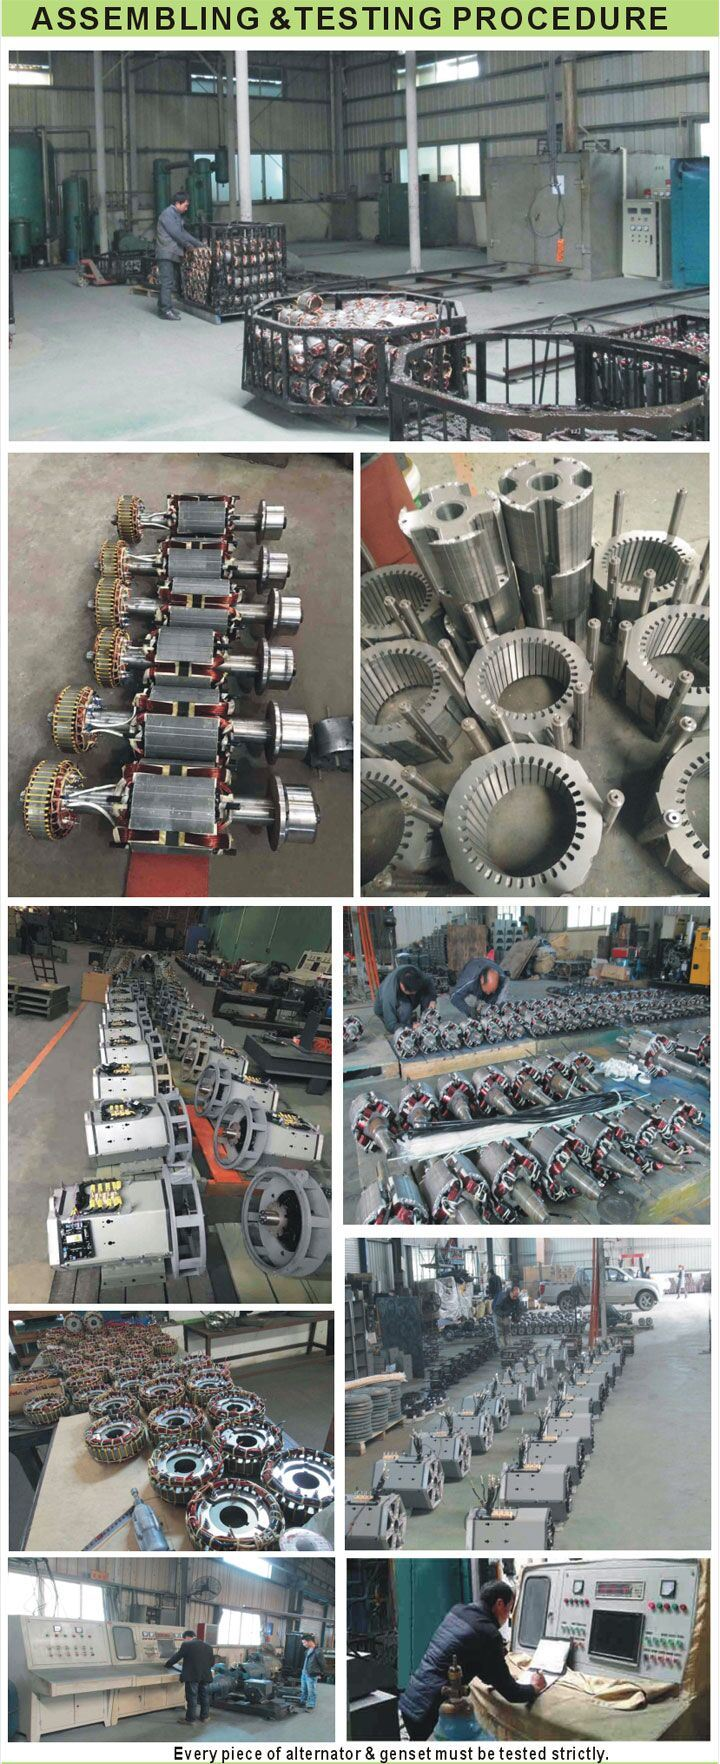 68 Kw Single Phase Hot Sale Dynamo a. C. Sychronous Brushless Alternator Copy Stamford